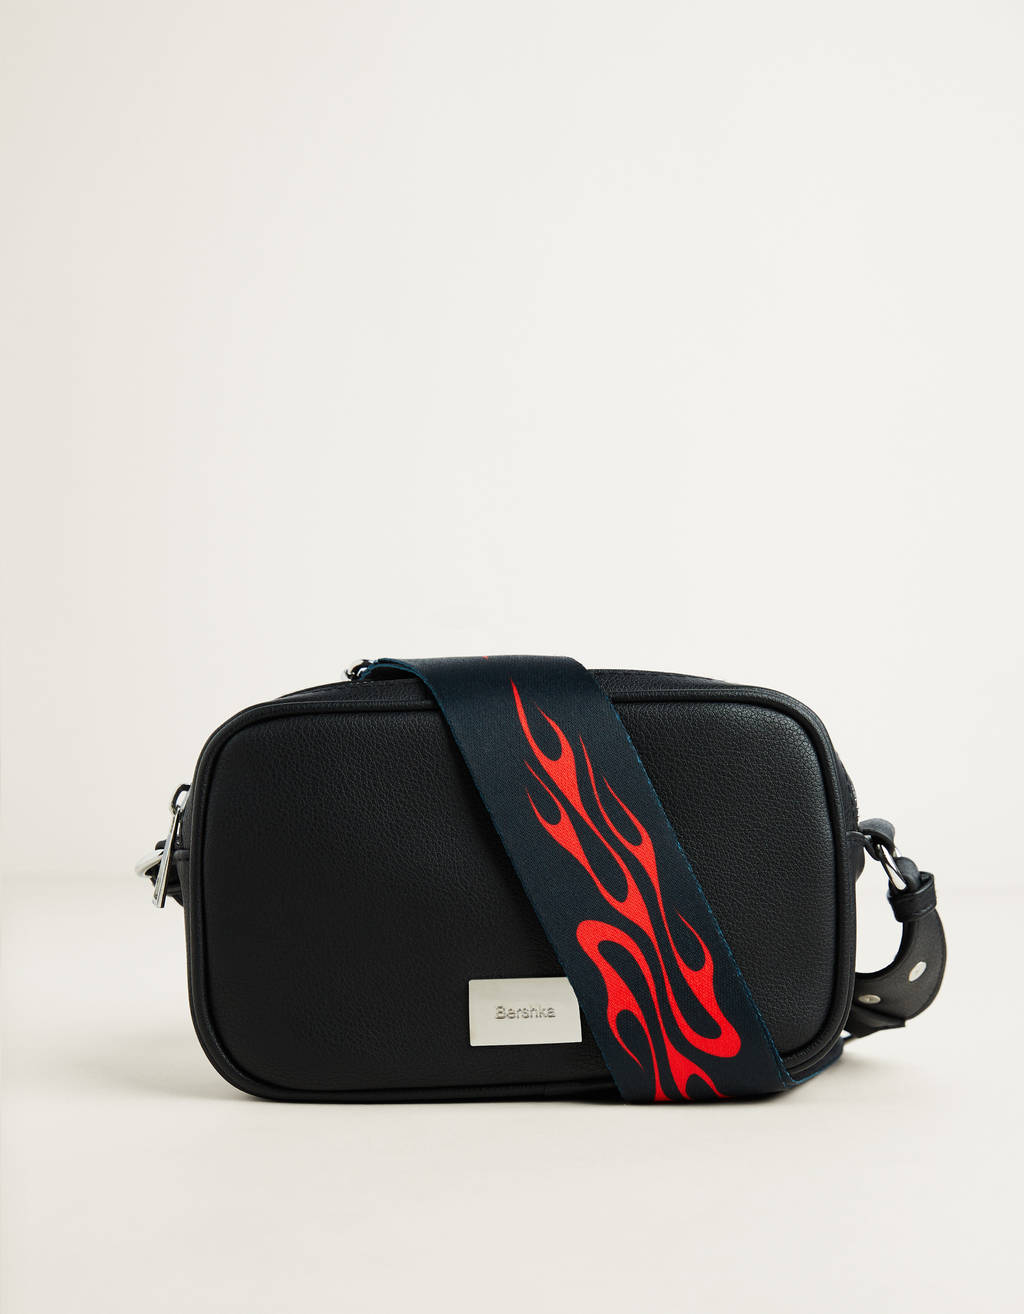 Crossbody bag with flame print